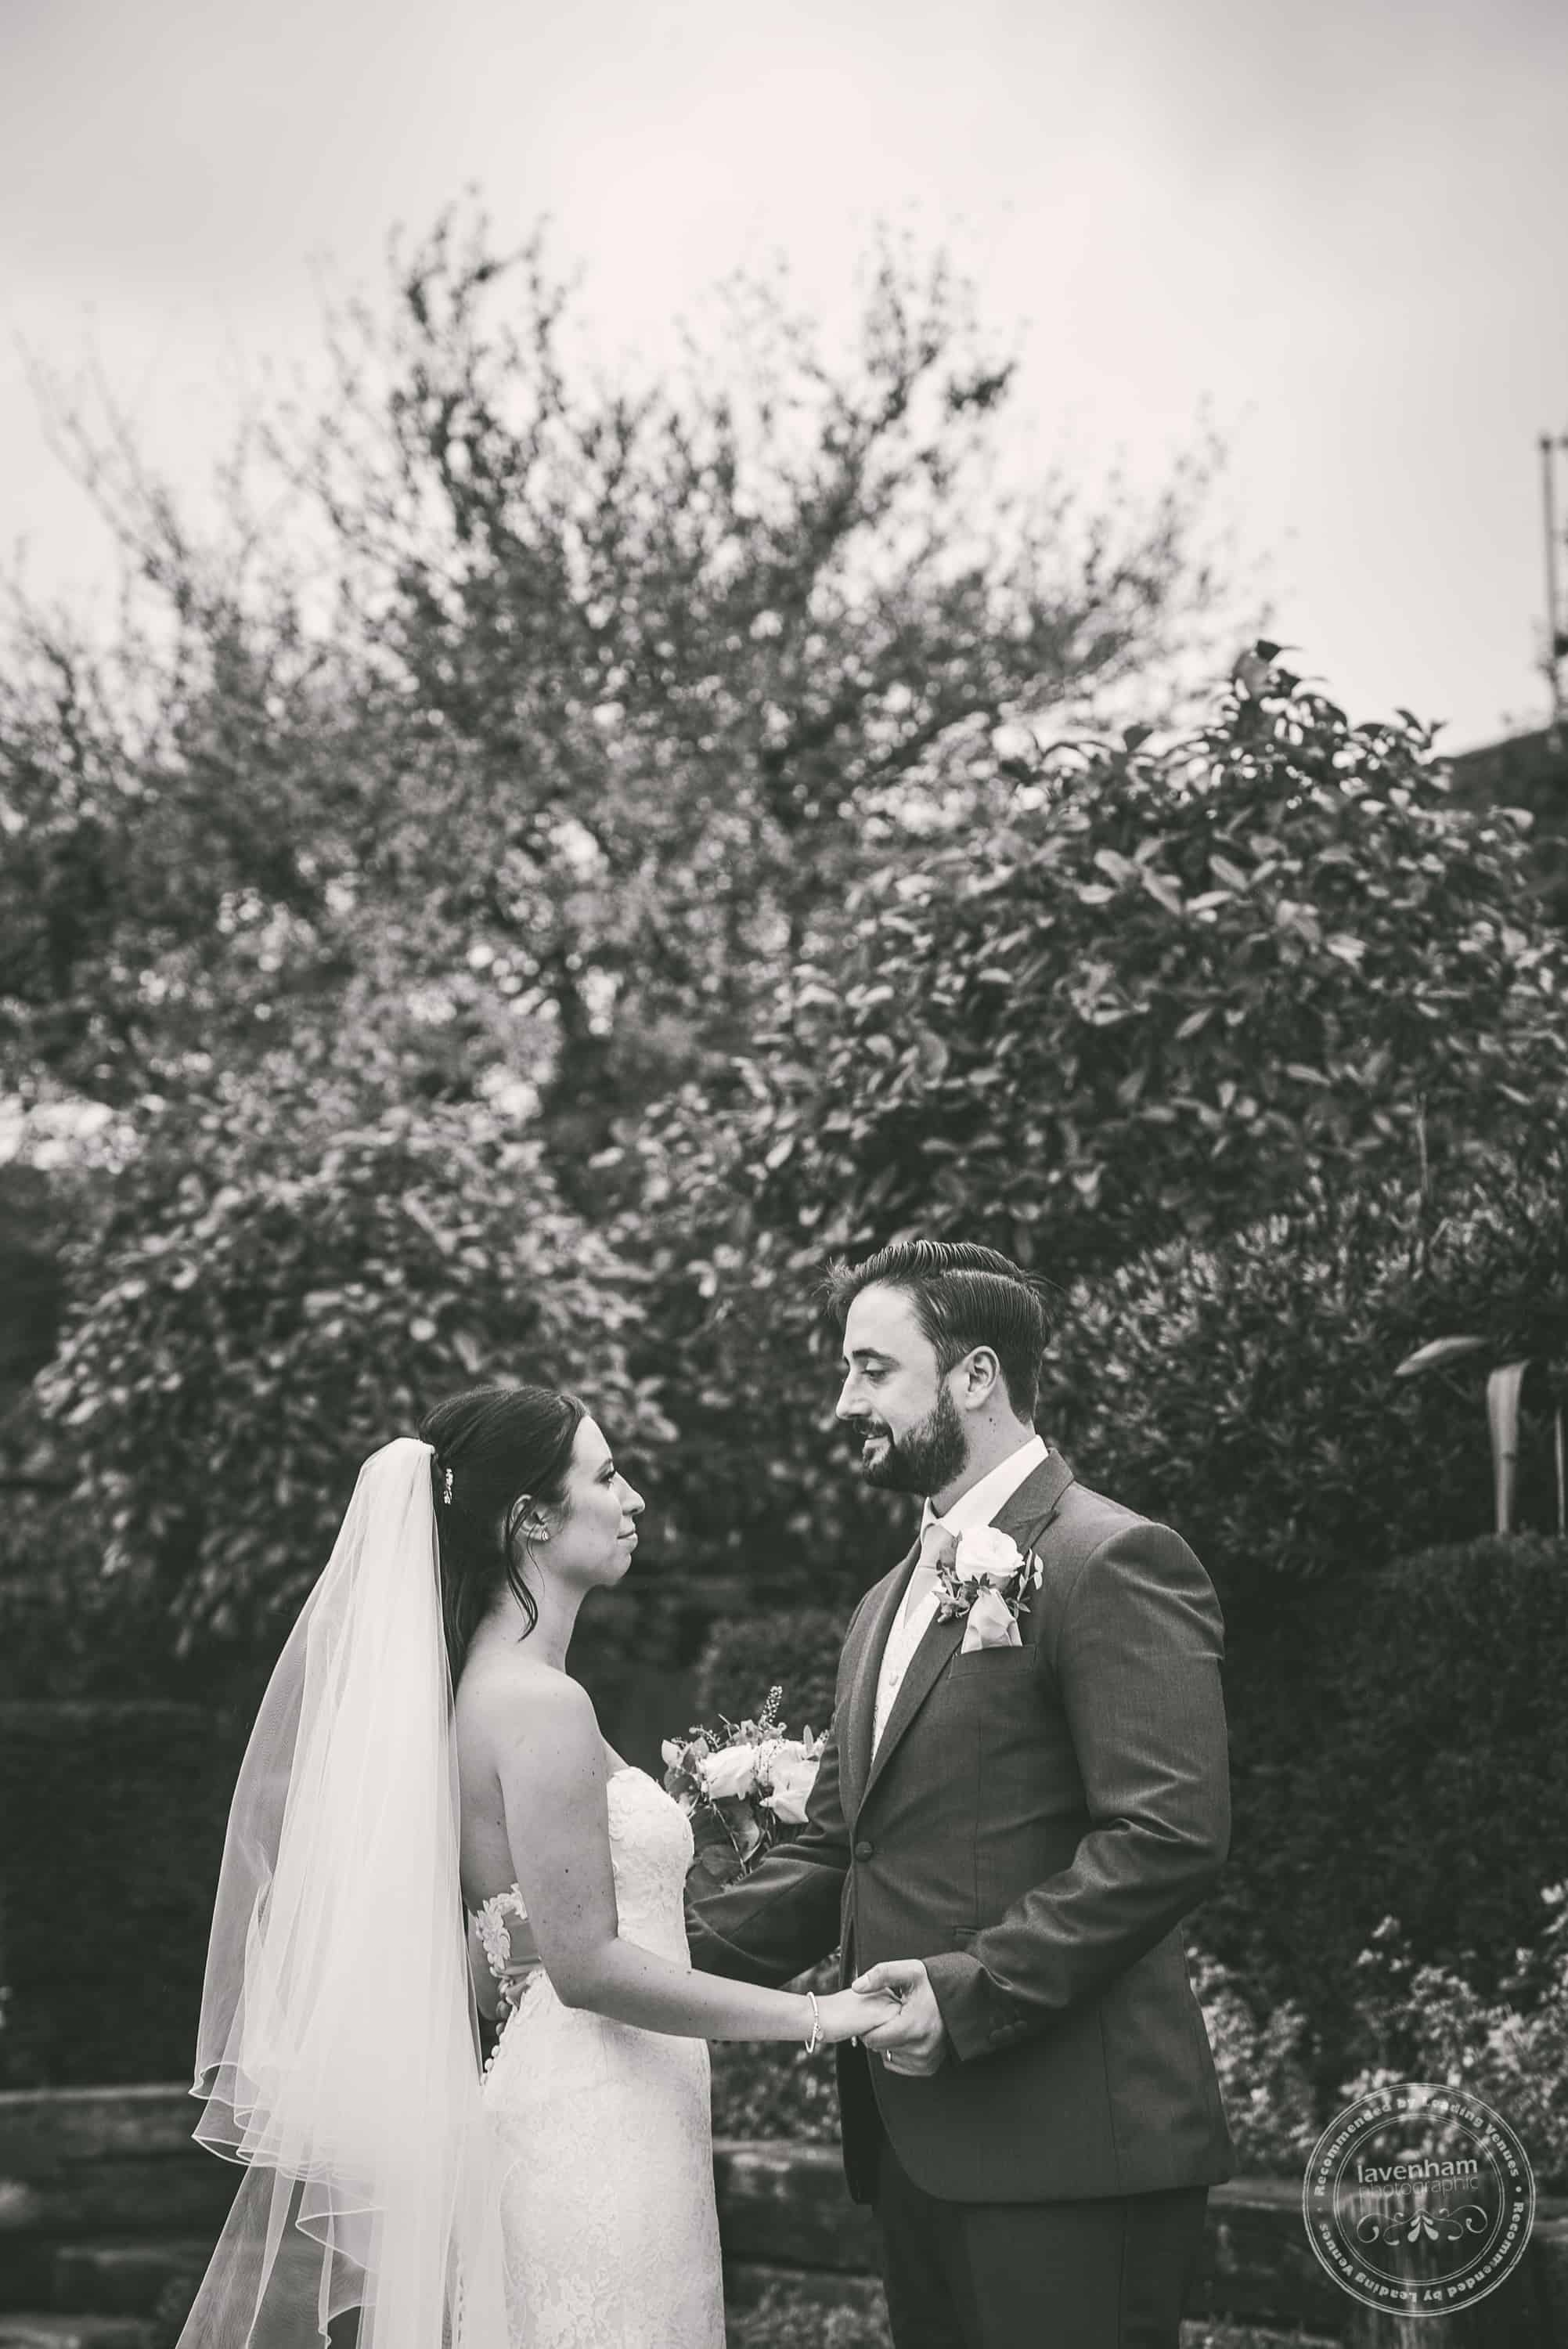 261019 Bull and Willow Room Essex Wedding Photographer 068